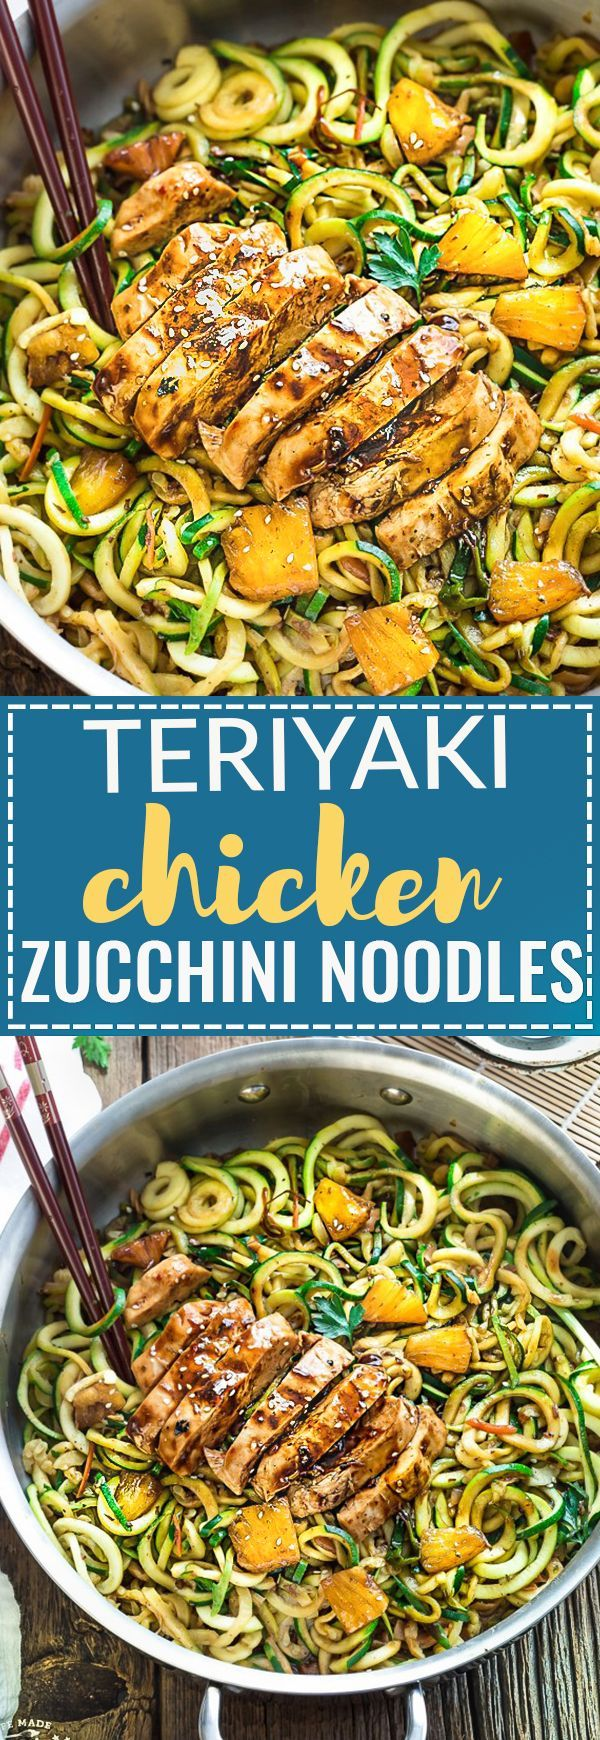 This recipe for One Pot Teriyaki Chicken Zoodles {Zucchini Noodles} makes the perfect easy gluten-free (with paleo option) lower carb weeknight meal! Best of all, it's so much better and healthier than takeout - only 30 minutes to make with just one pan to clean! Great for Sunday meal prep for the week for your school or work lunchboxes or lunch bowls.